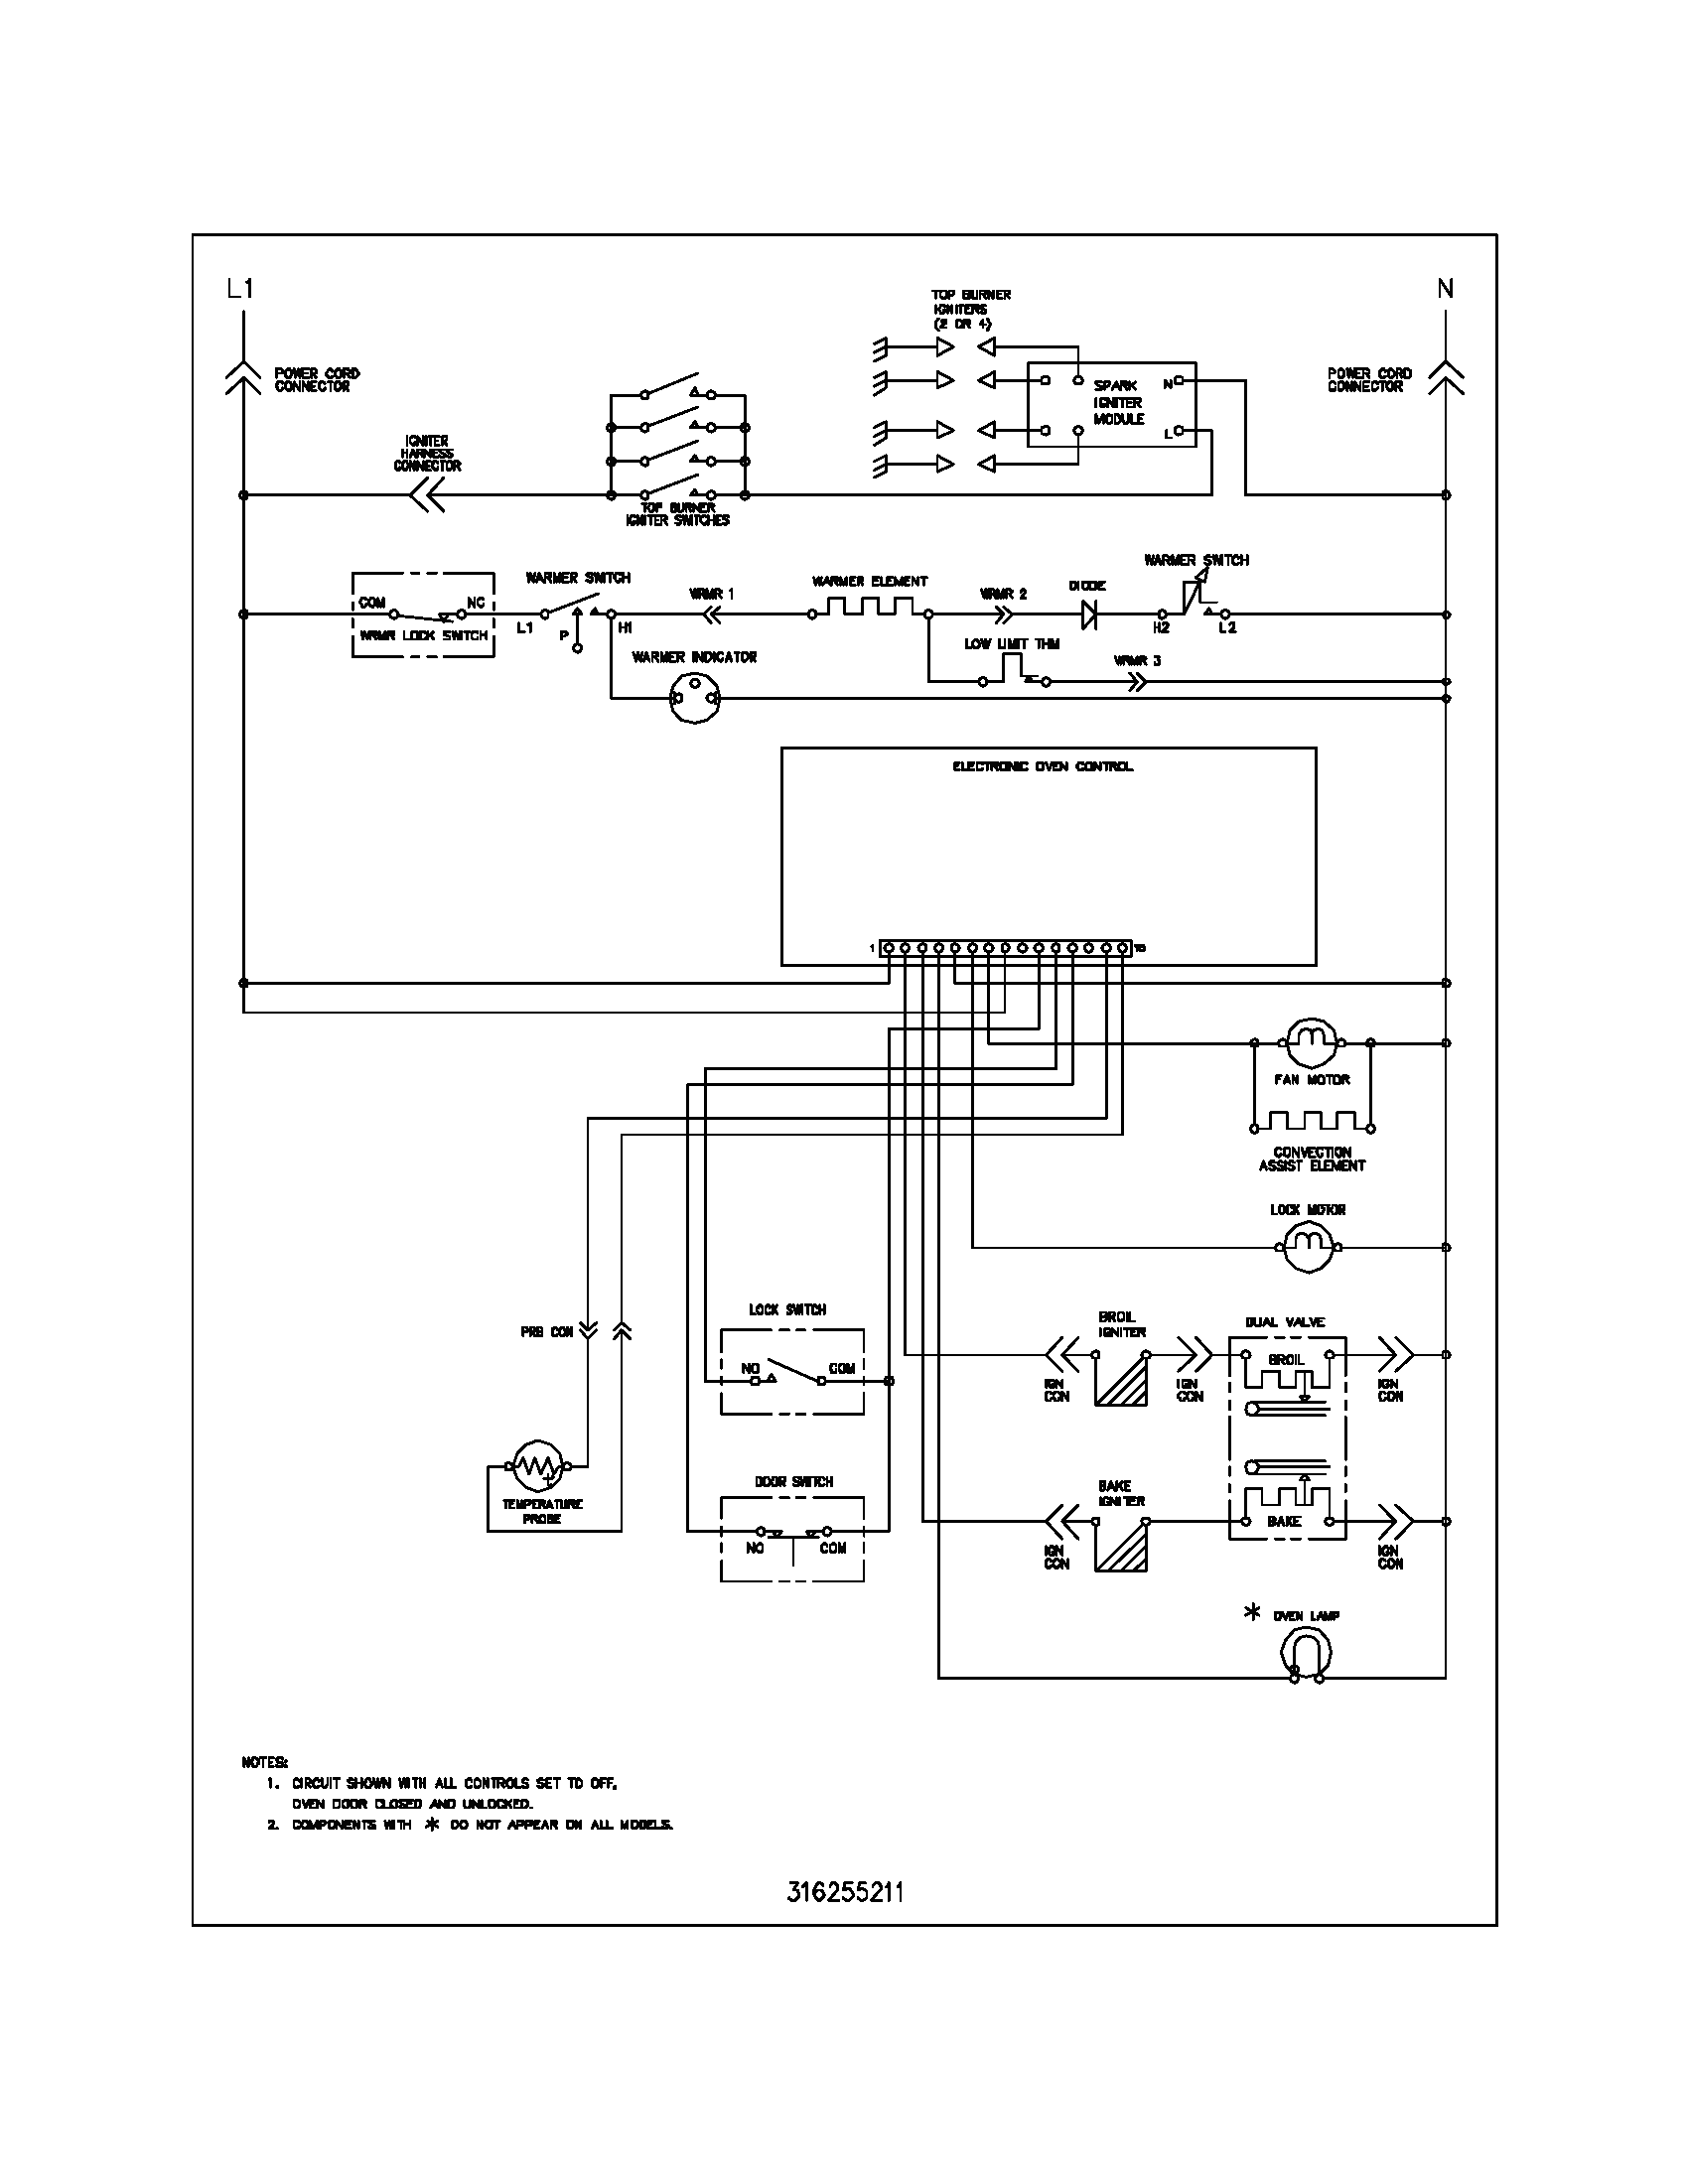 furnace wiring diagram eb15b electric arresting wiring diagram rh pinterest ie